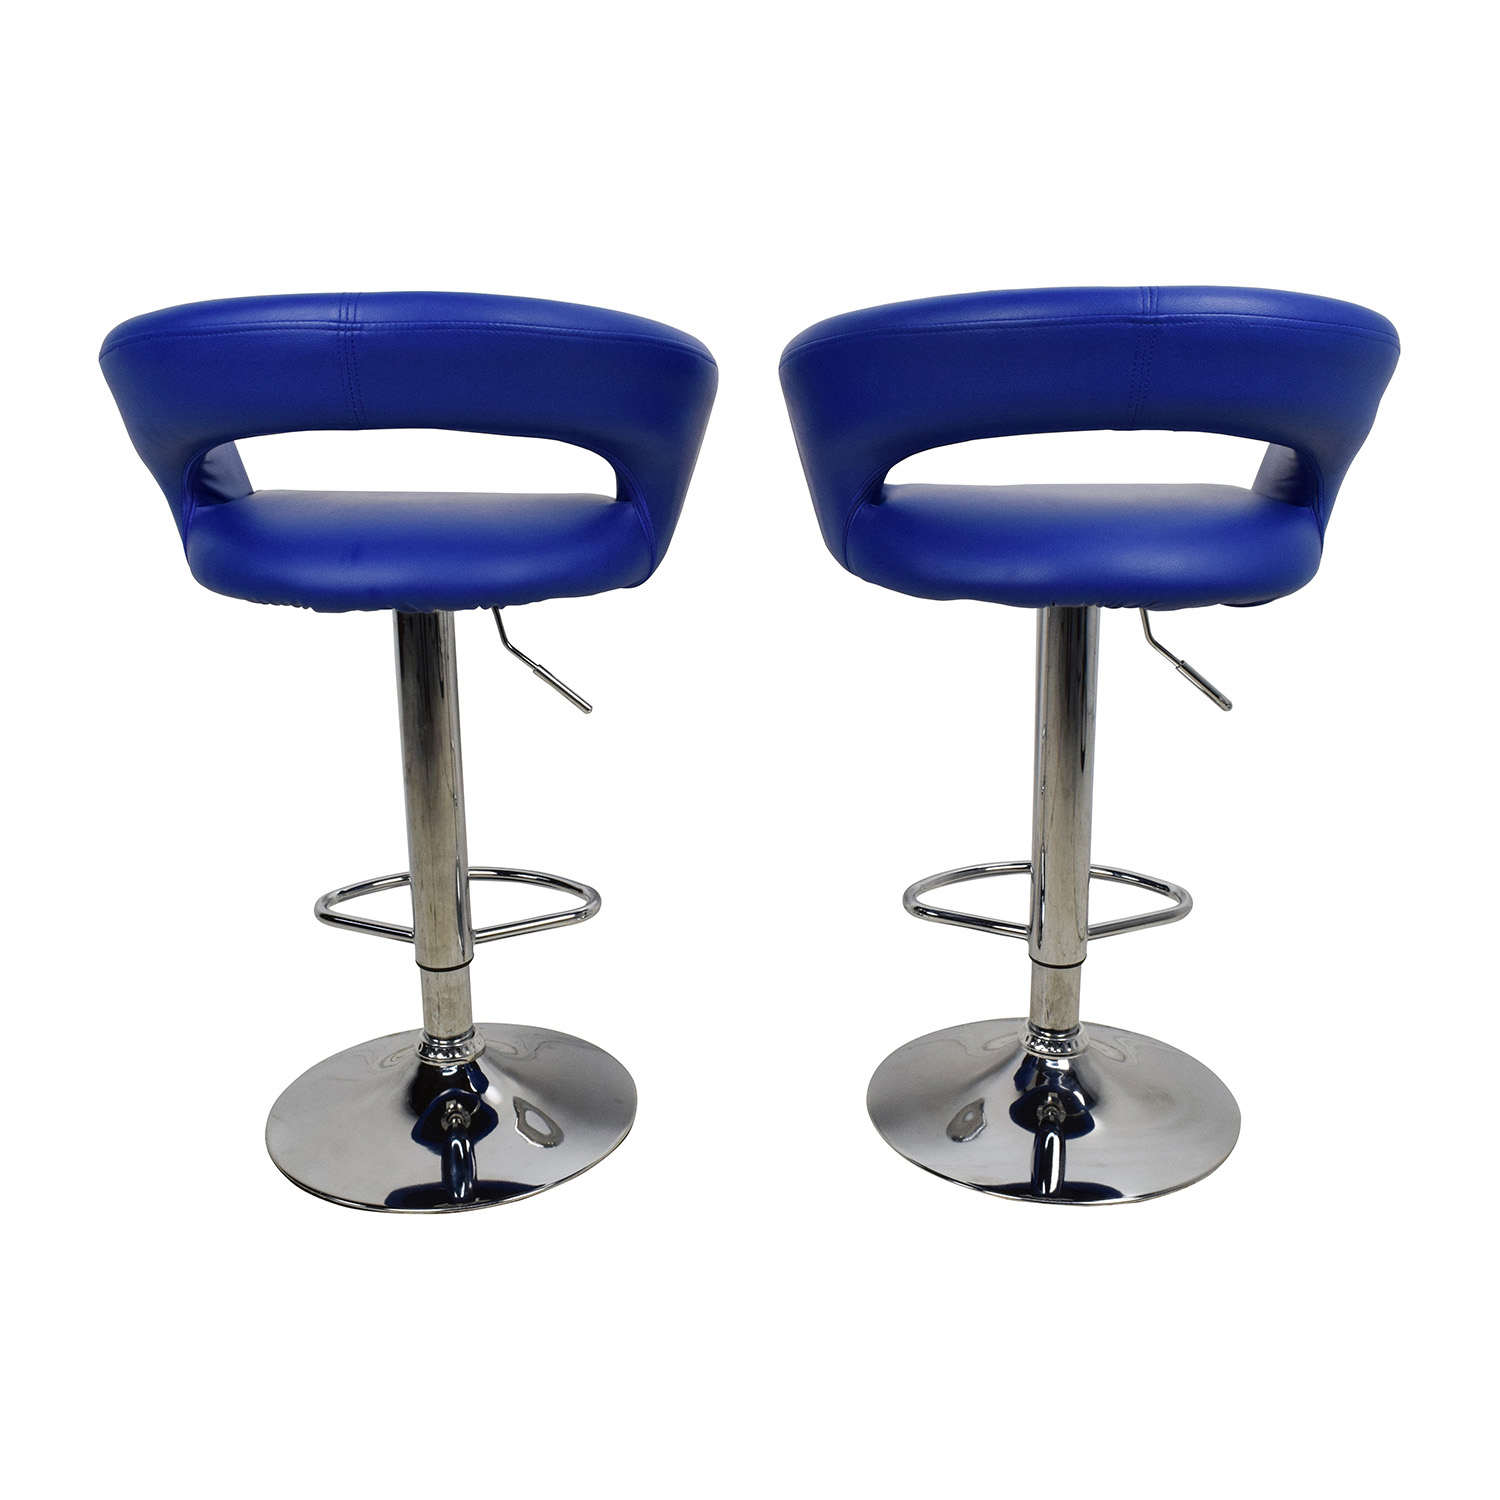 Awesome 79 Off Allmodern All Modern Blue Leather Adjustable Height Swivel Bar Stools Chairs Pdpeps Interior Chair Design Pdpepsorg